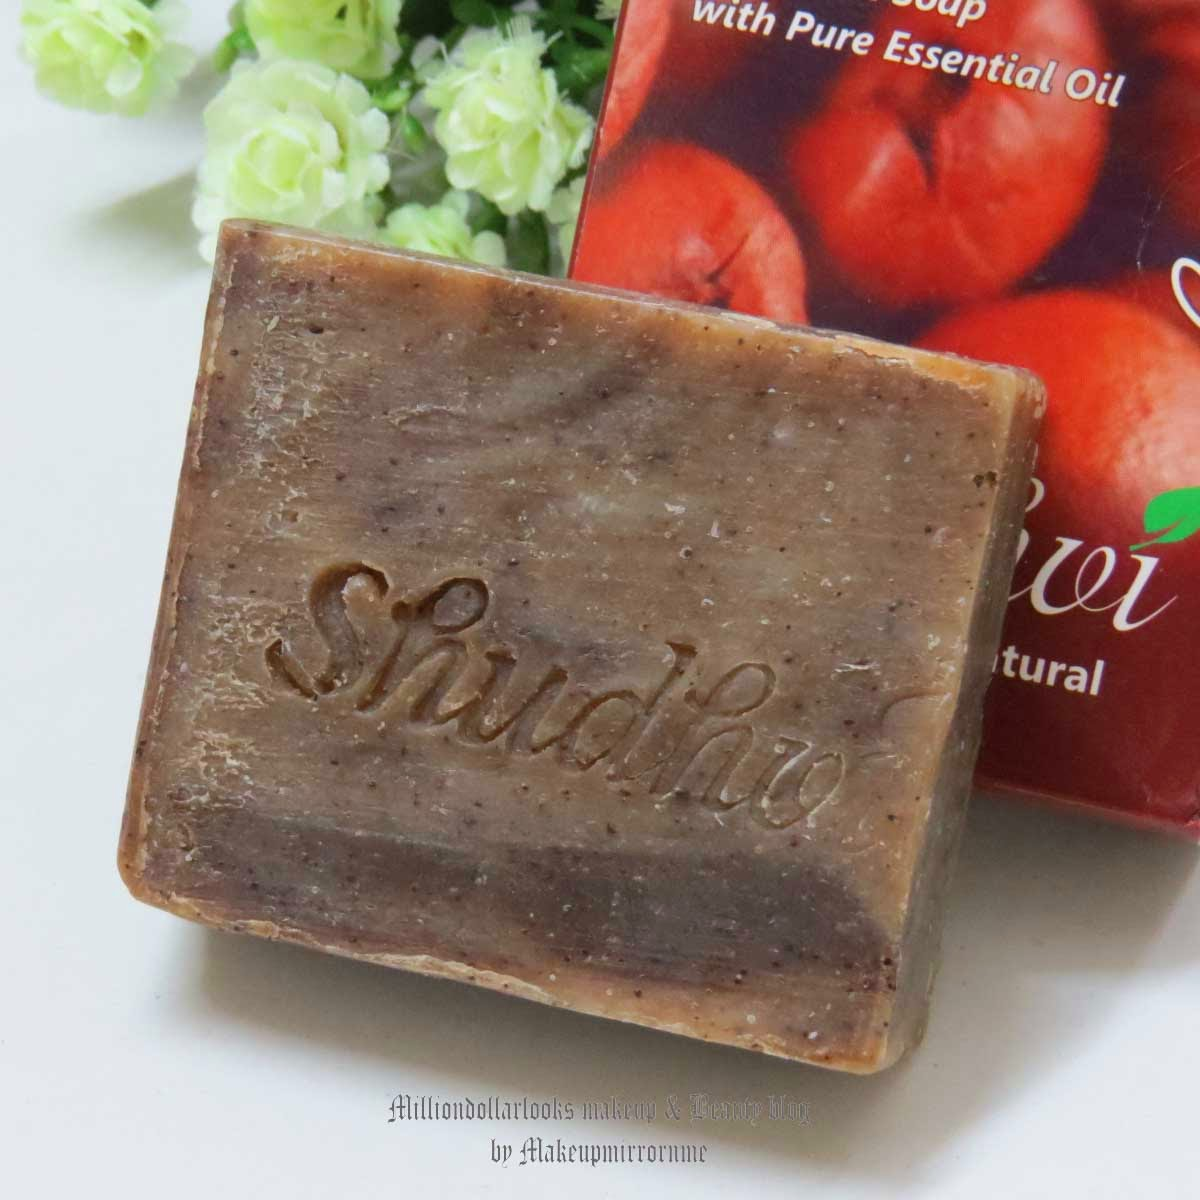 Shudhvi Naturals Coffee Cinnamon Cream Handmade Soap Review & Pictures, Shudhvi handmade soaps review, Handmade soaps in India, Coffee detox handmade soap review, Shudhvi naturals review, Indian beauty blog, Indian makeup and beauty blog, Indian beauty bloggers, Bath products, skin detoxification, Cinnamon soap